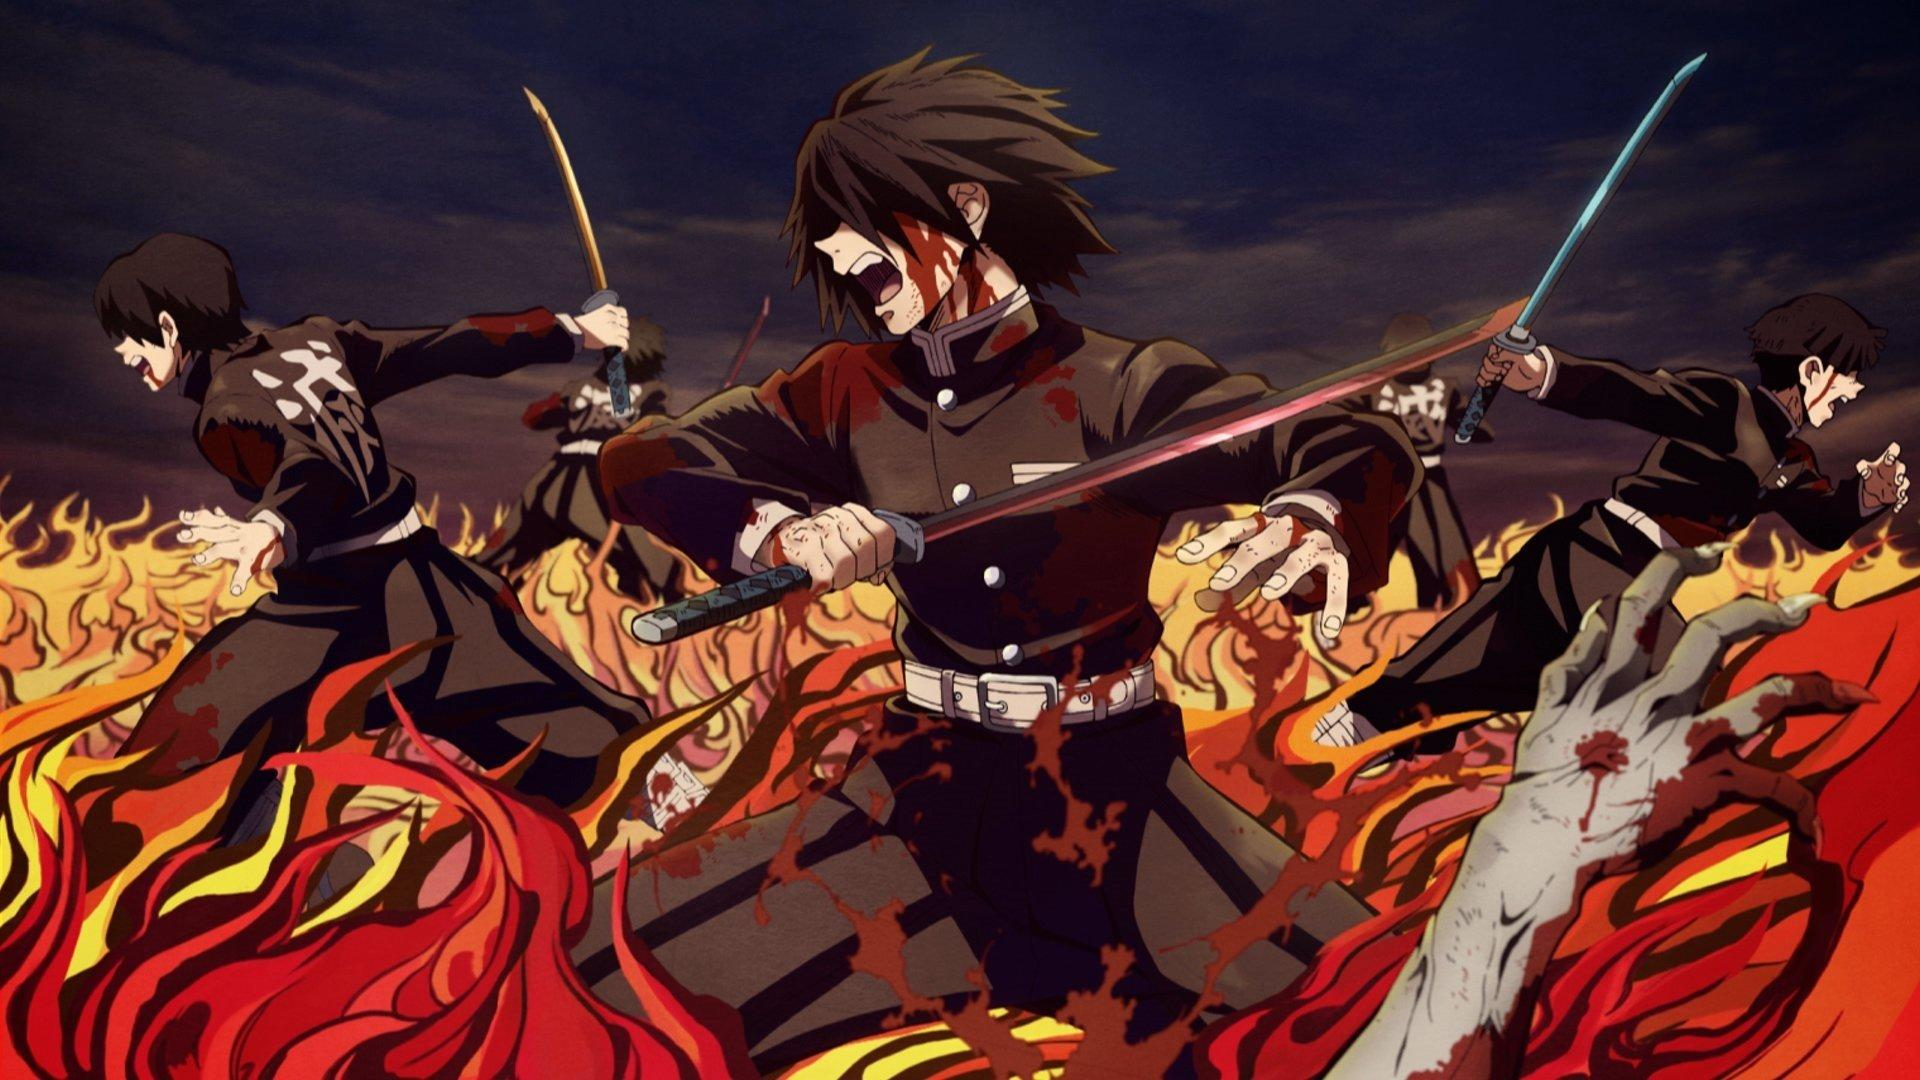 Is there an issue with this post? Demon Slayer Wallpapers - Wallpaper Cave